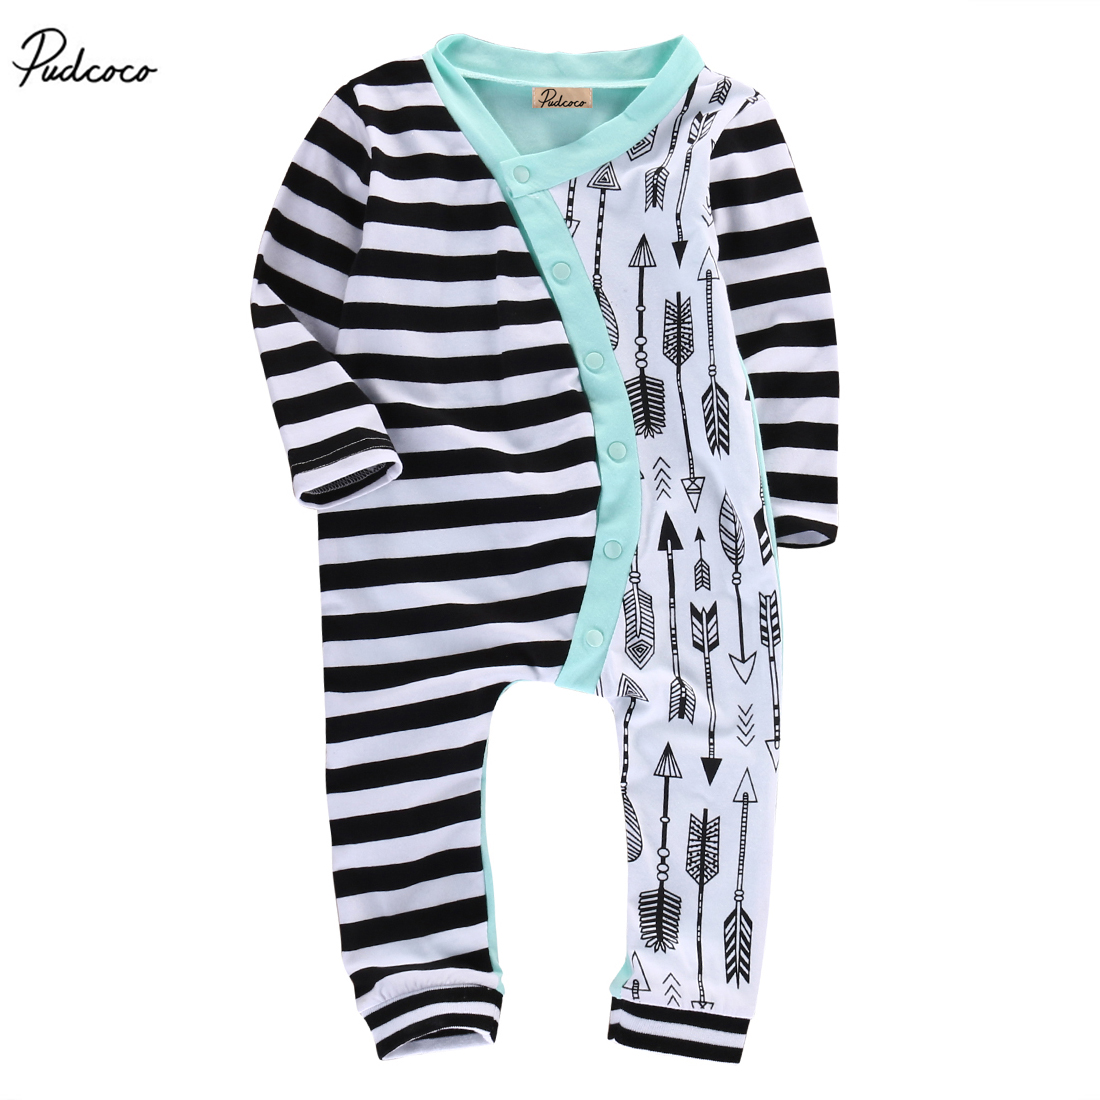 New 2017 Summer Newborn Baby Girl Boys Stripe Arrow Romper Long Sleeve Jumpsuit Outfits One-piecer Clothes